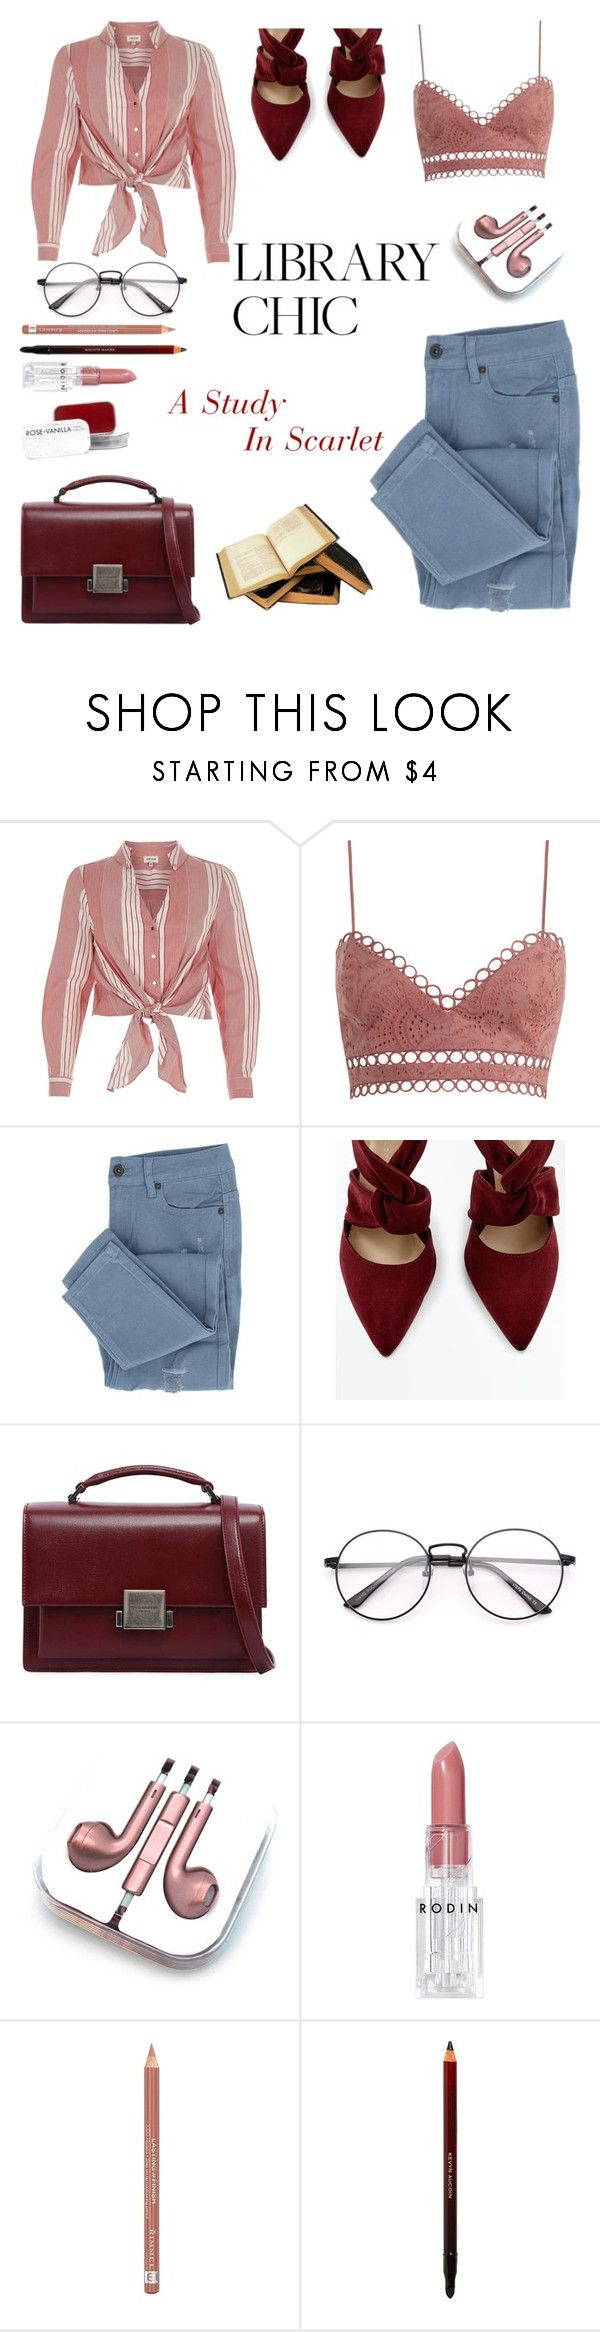 """Library Chic: A Study In Scarlet"" by yosifova ❤ liked on Polyvore featuring River Island, Zimmermann, Yves Saint Laurent, PhunkeeTree, Rodin, Rimmel, Fig+Yarrow, casual, contest and librarychic"